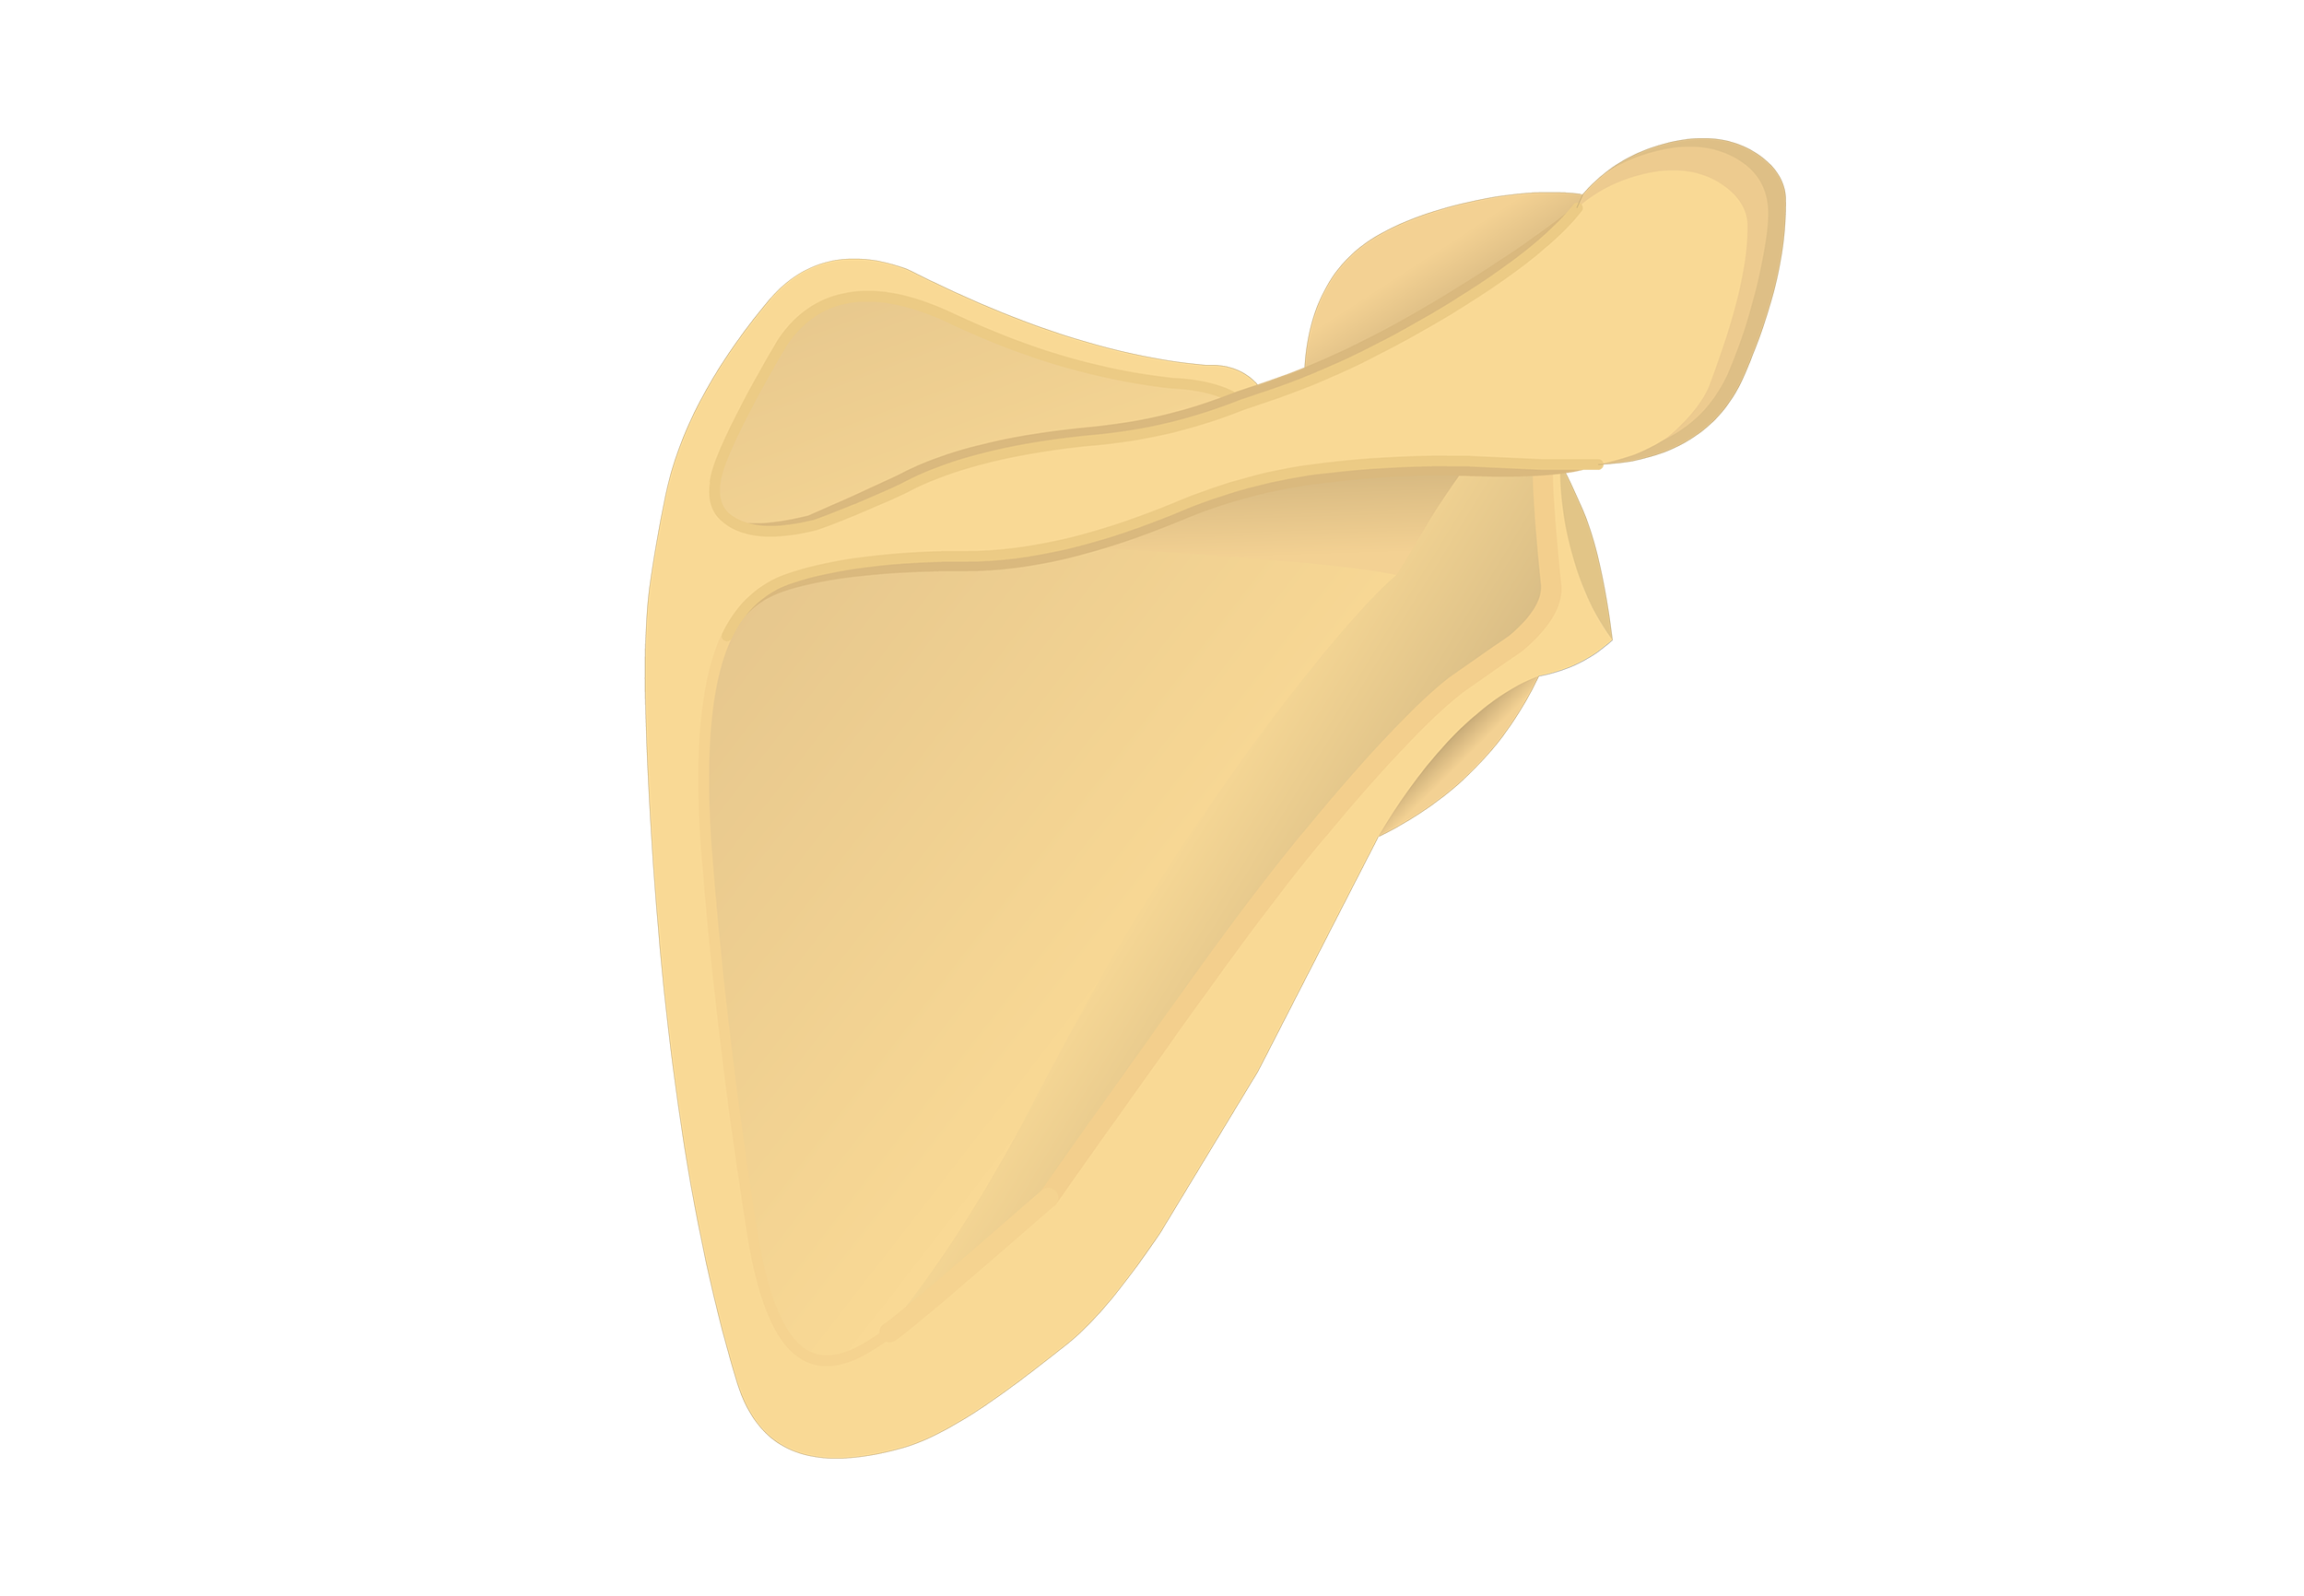 Illustration of posterior scapula